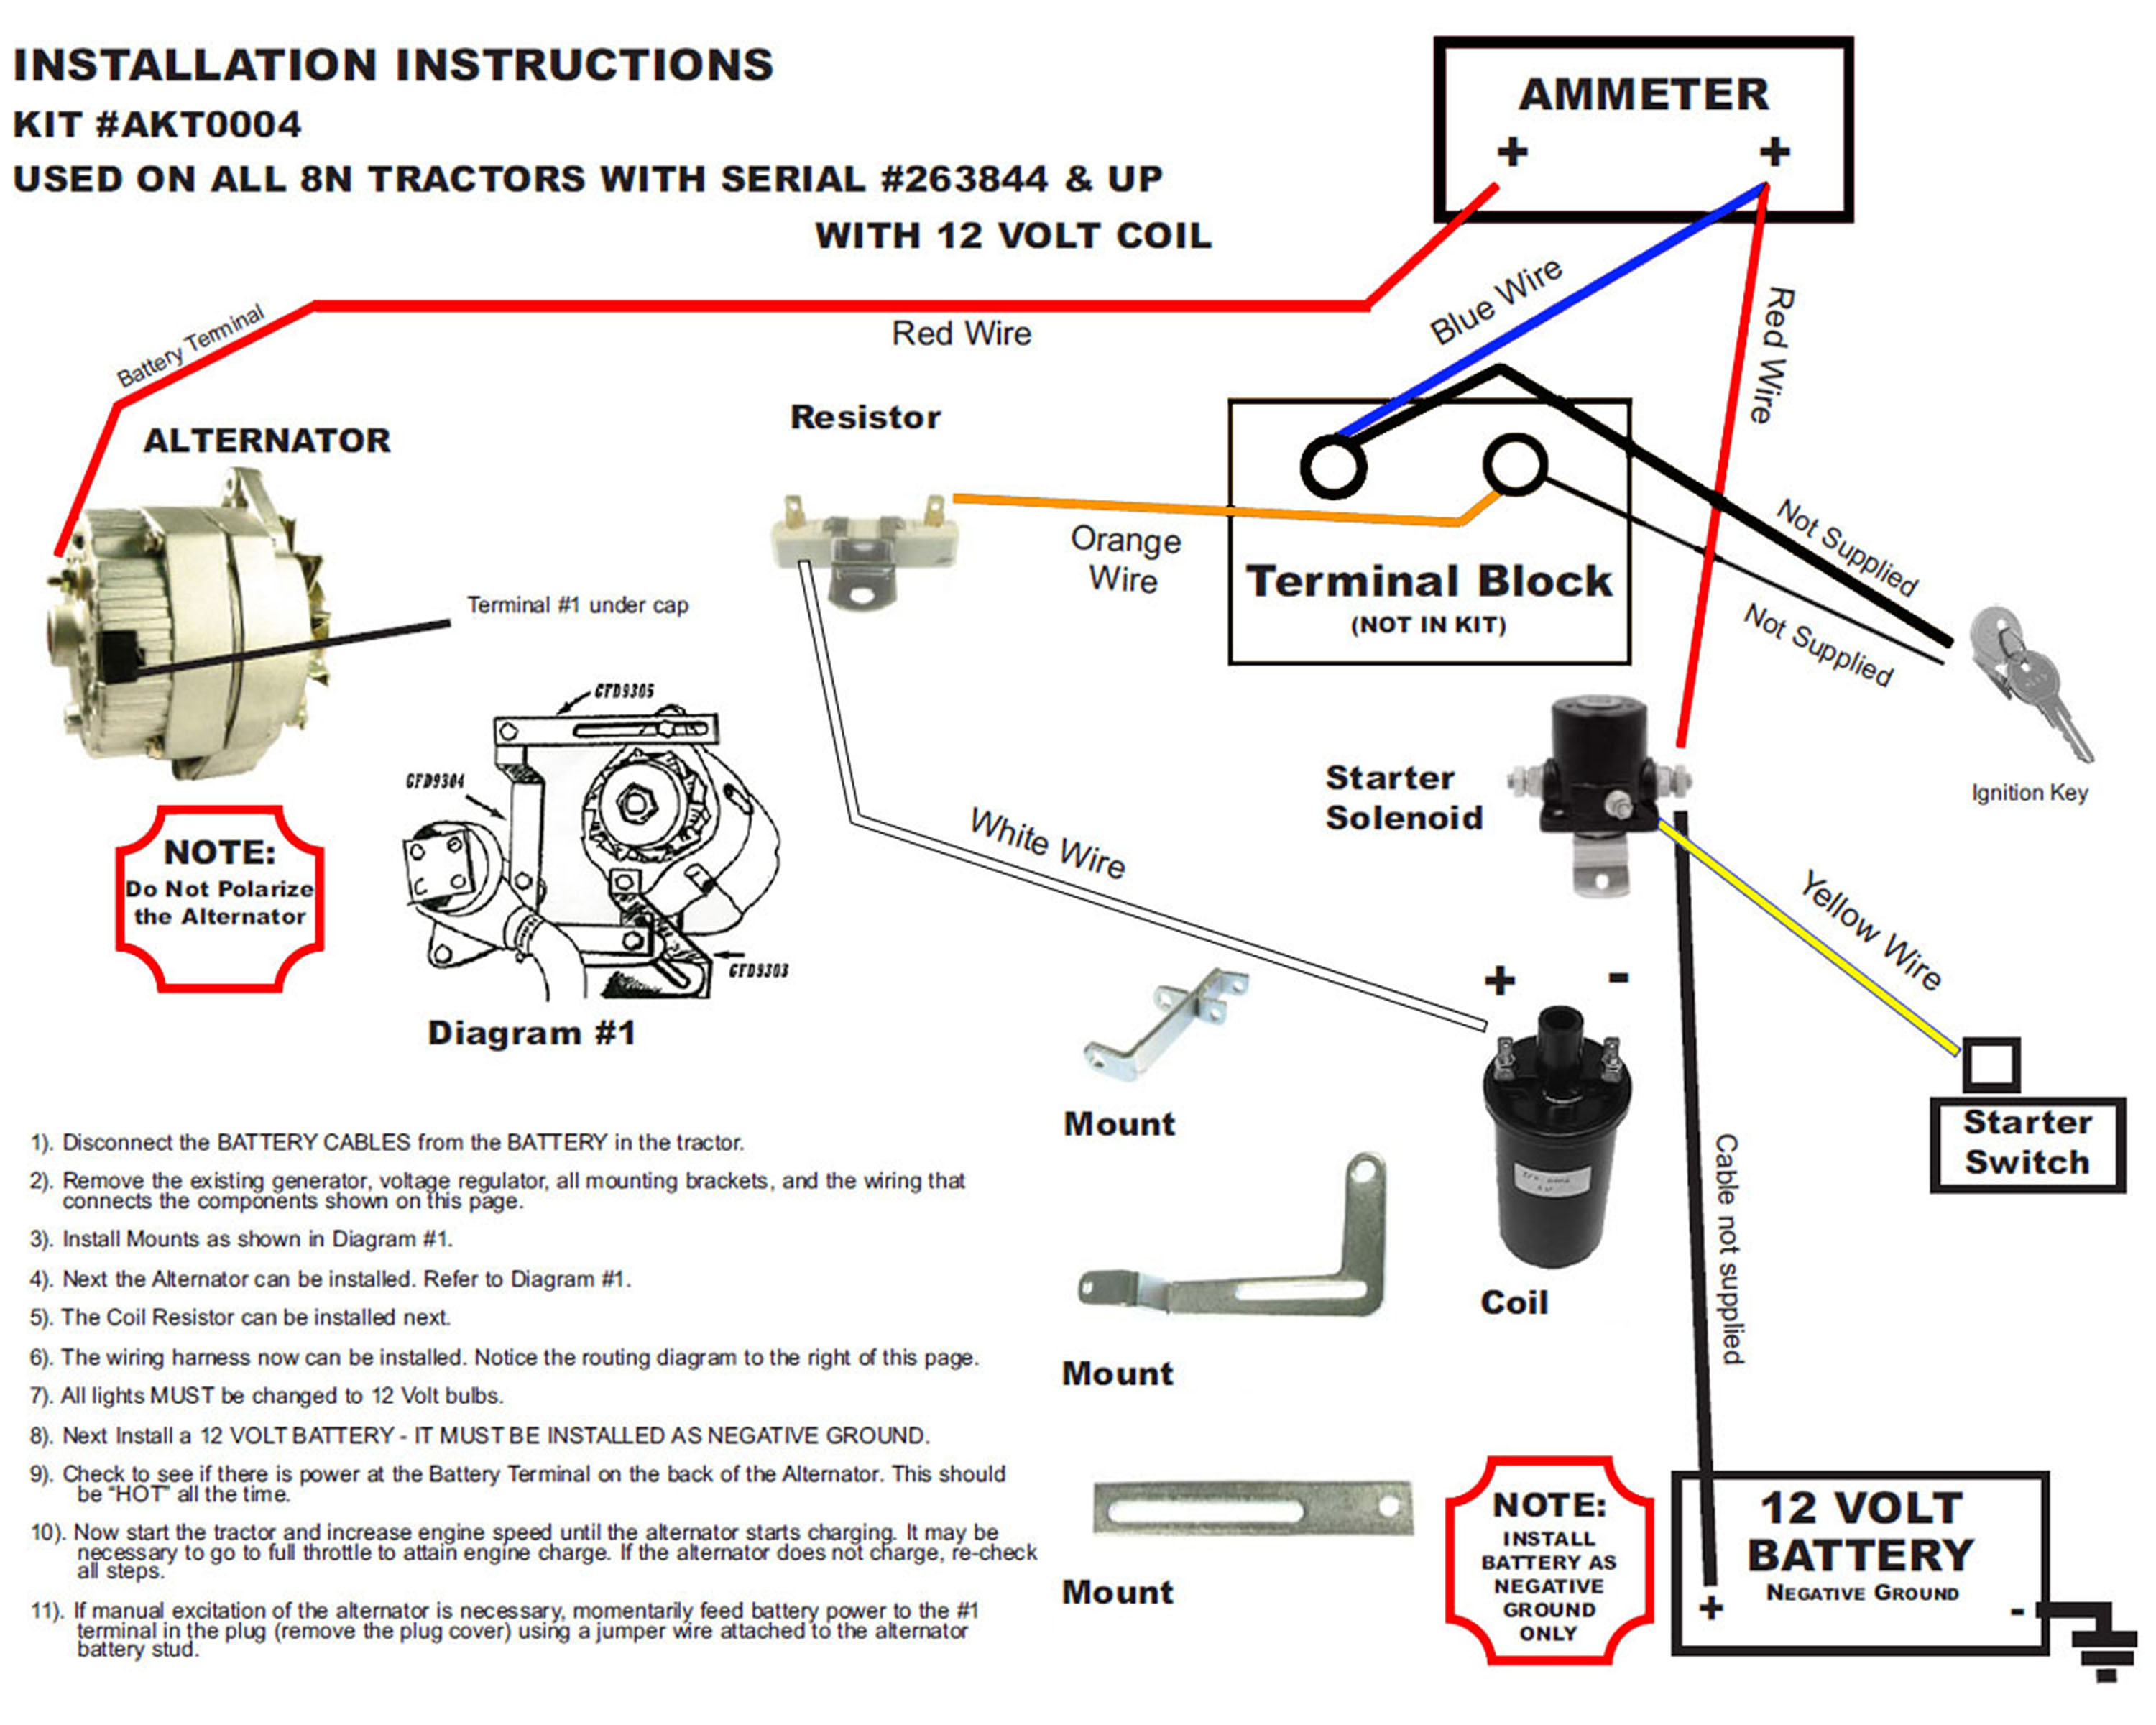 Ford 1710 Ignition Wiring Diagram New Generator Alternator Fits Conversion Kit Late Model